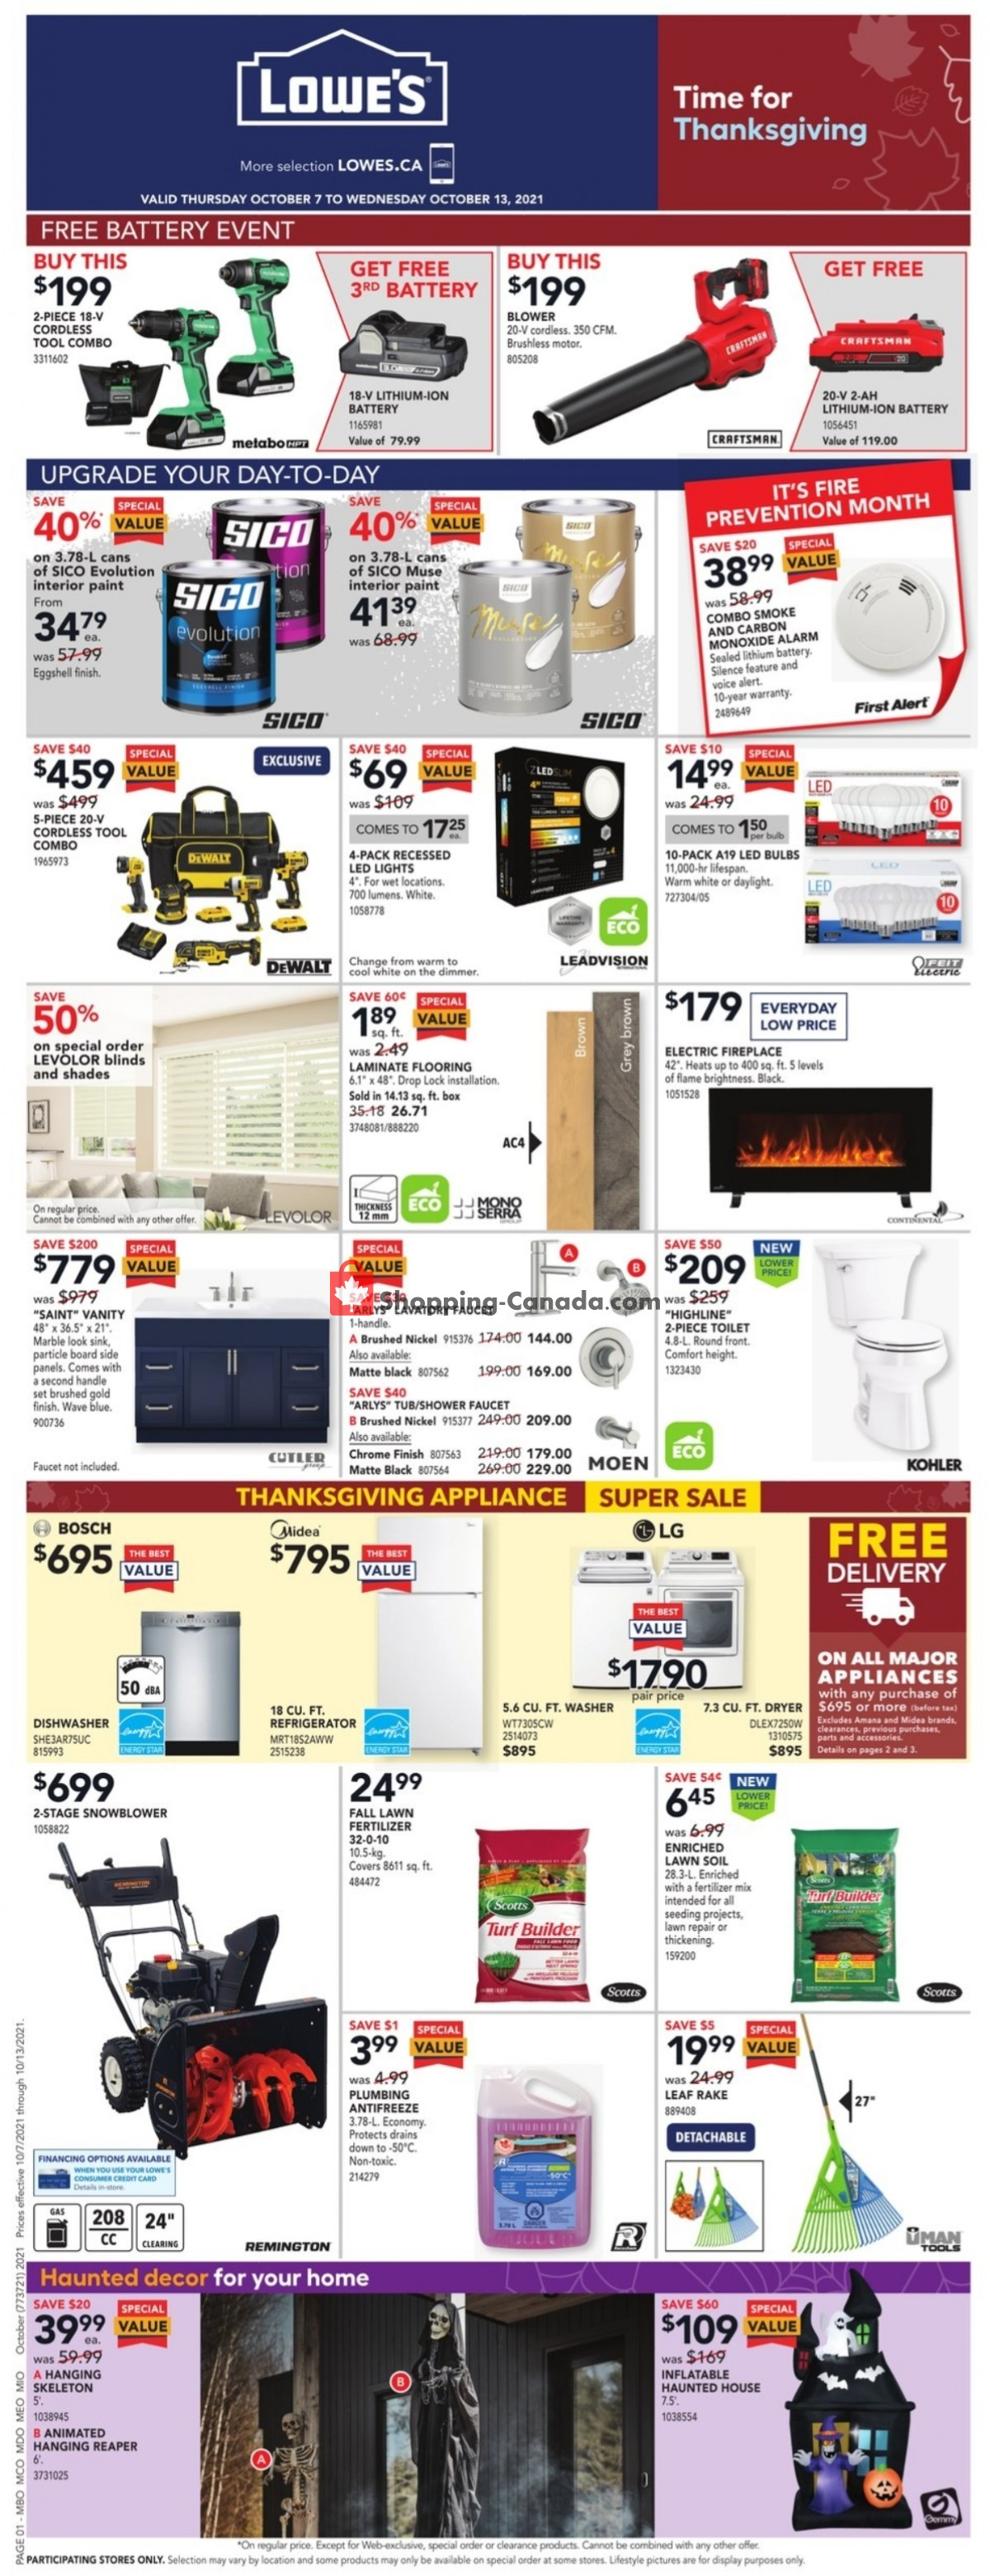 Flyer Lowe's Canada - from Thursday October 7, 2021 to Wednesday October 13, 2021